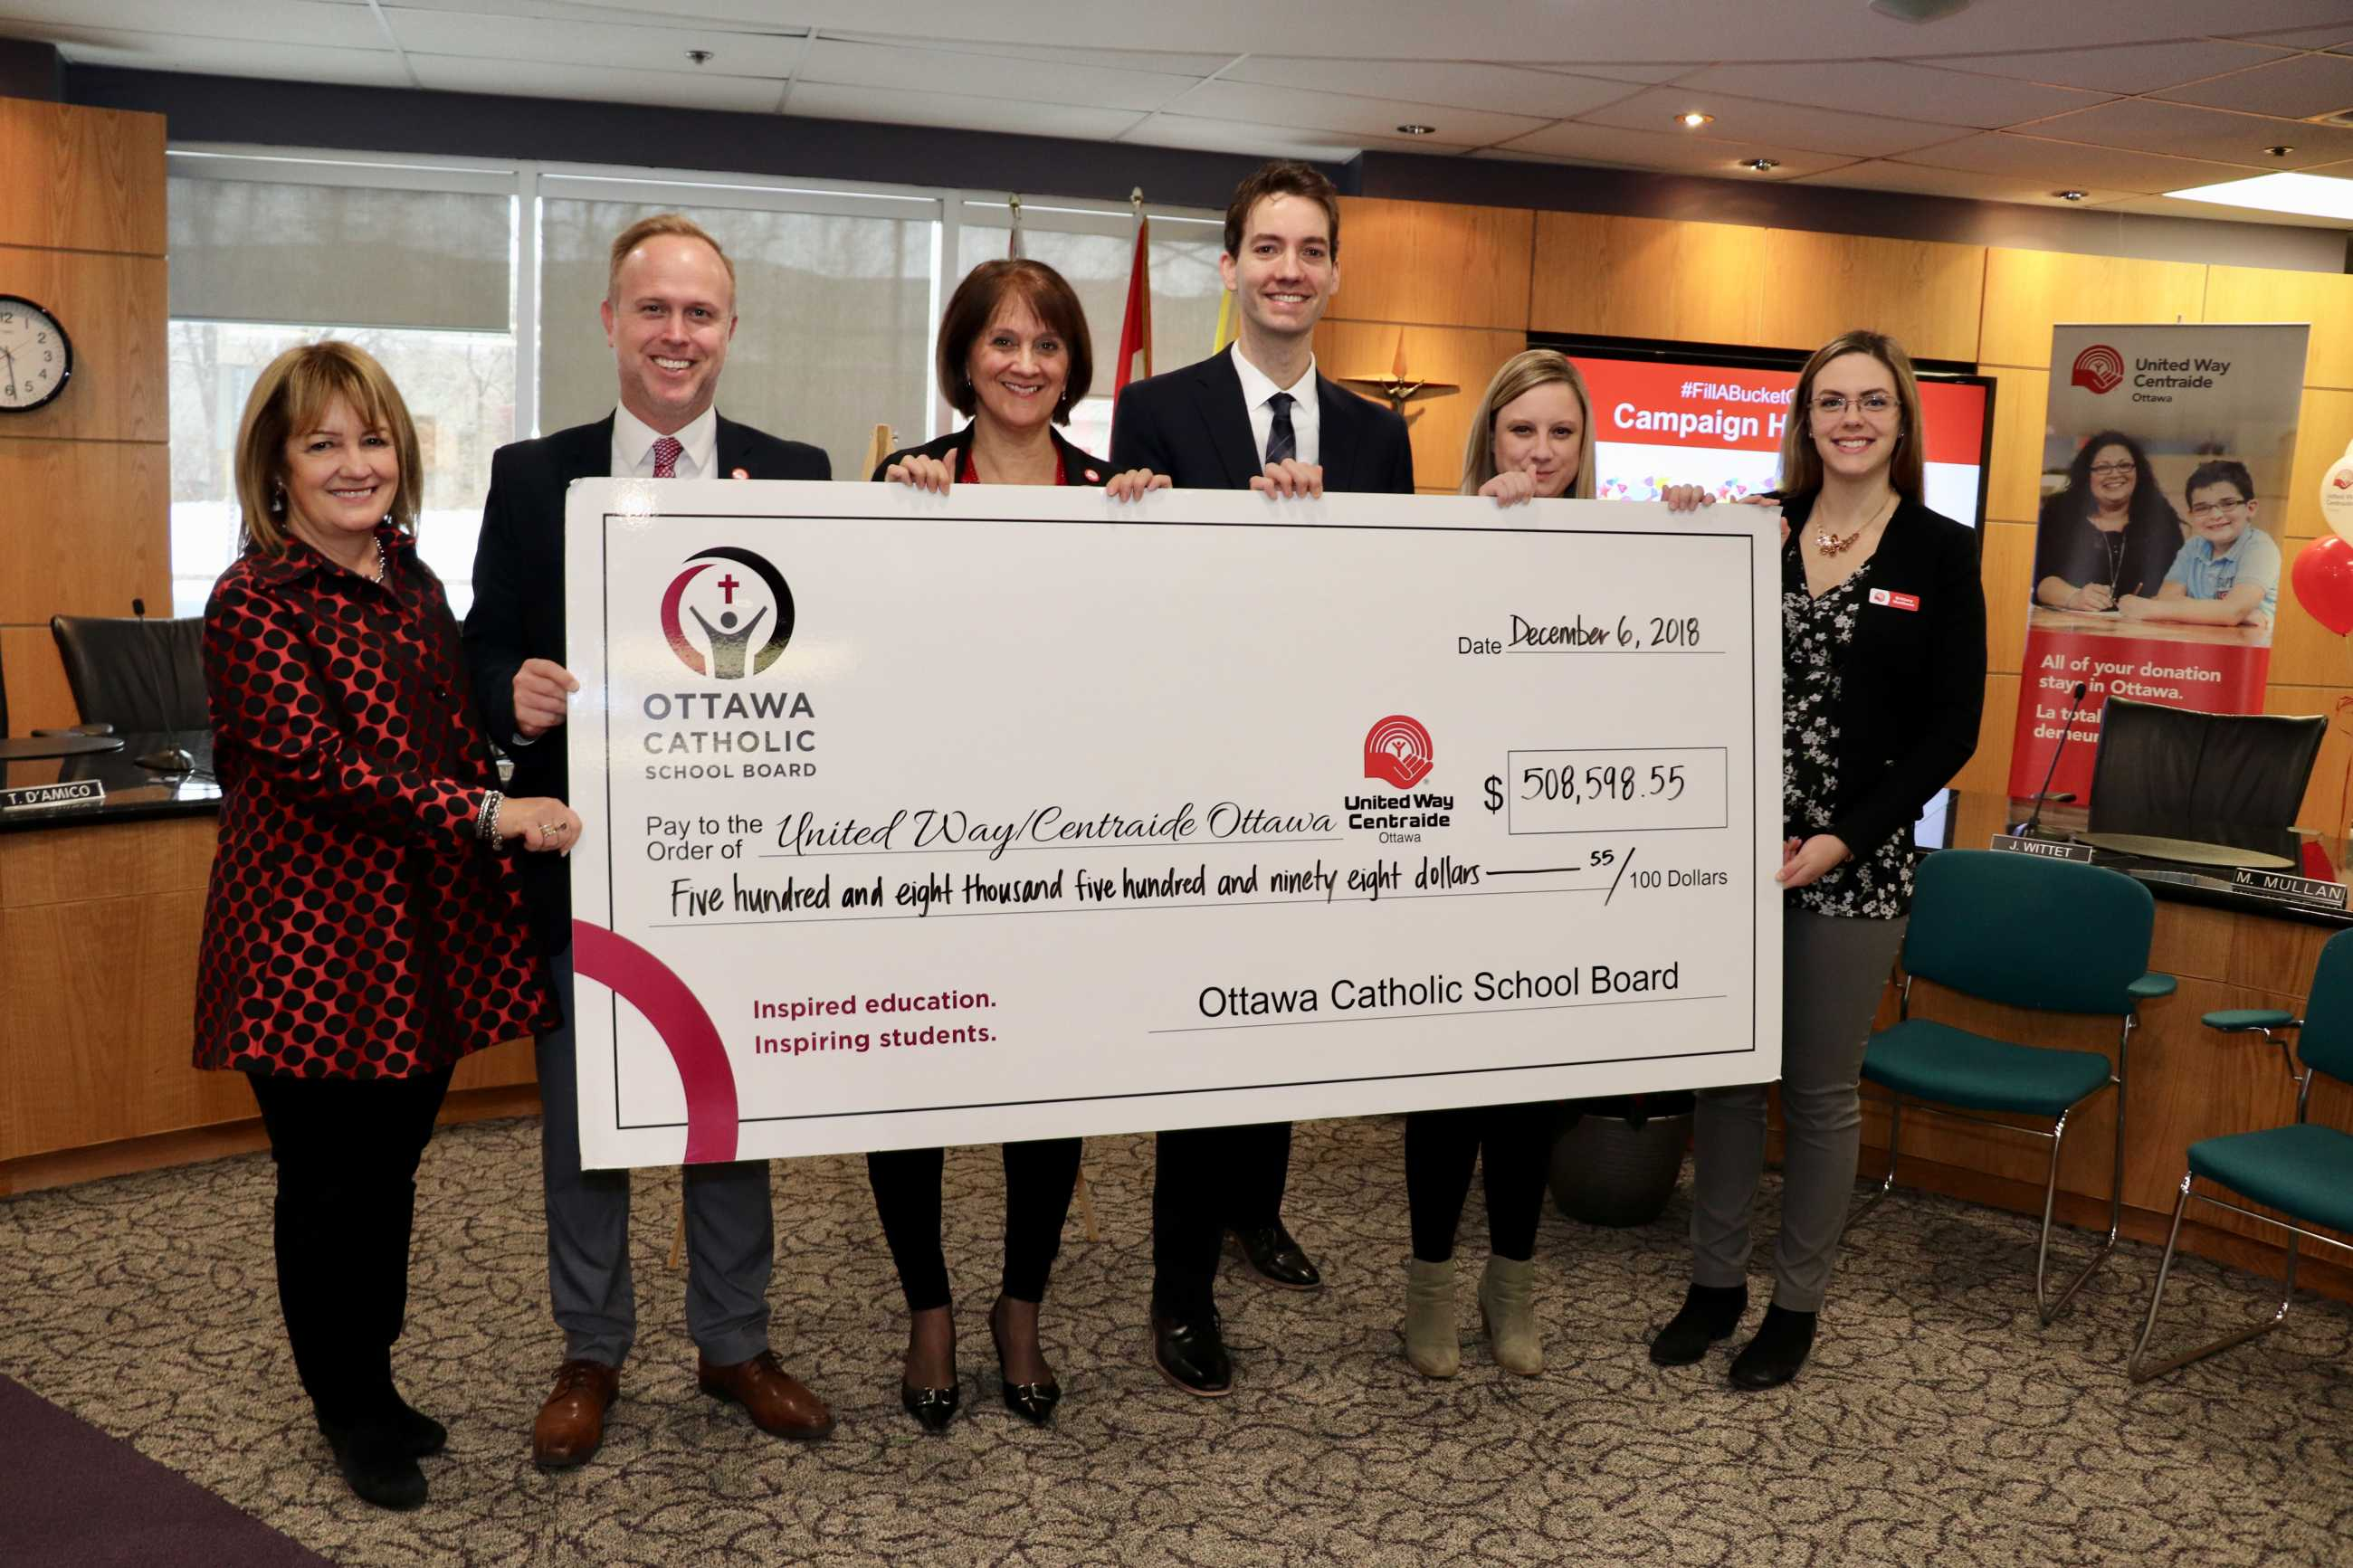 OCSB United Way Campain Final Number Reveal photo